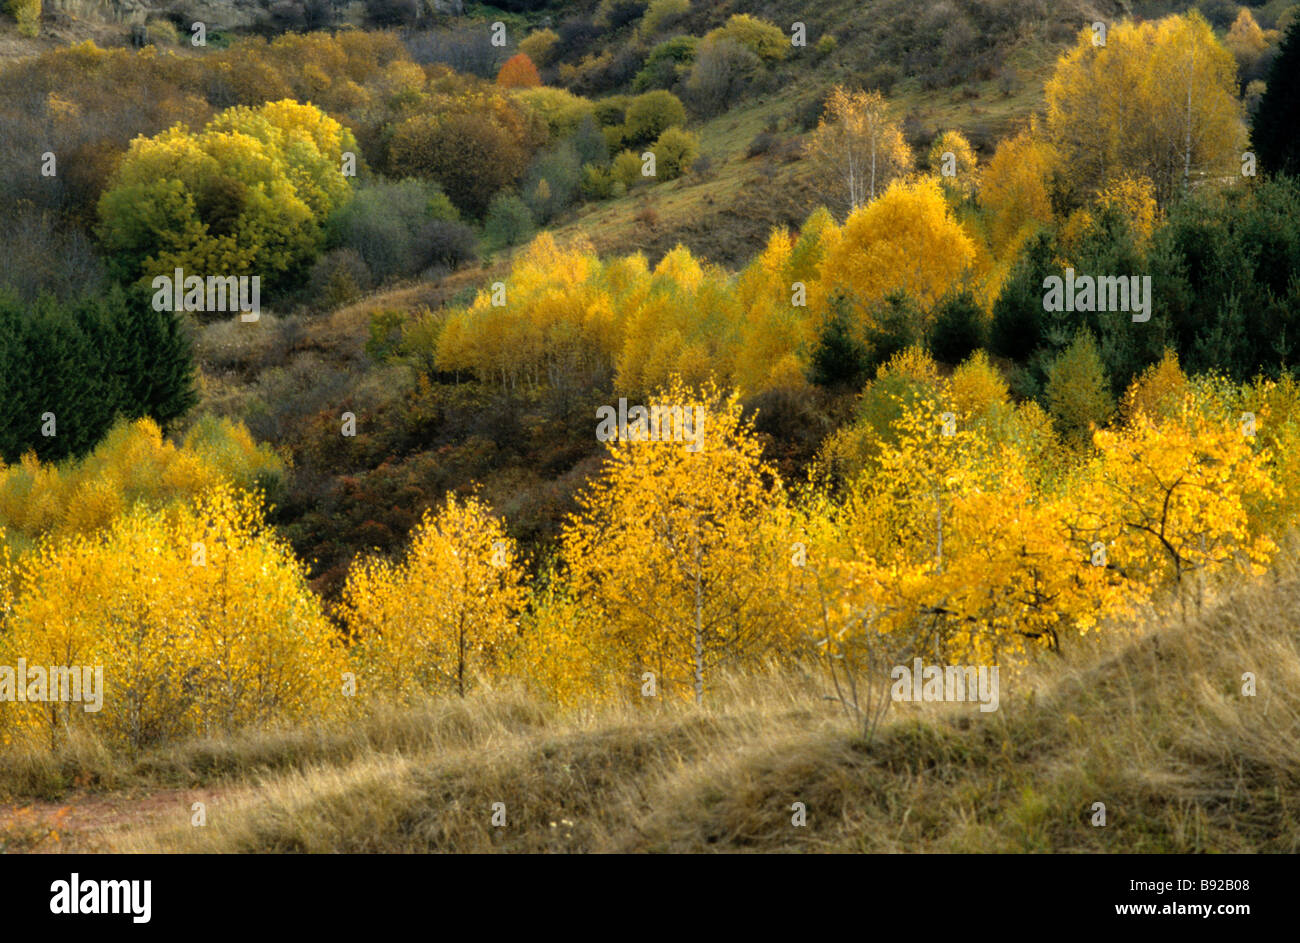 Autumn in the North Caucasian foothills - Stock Image